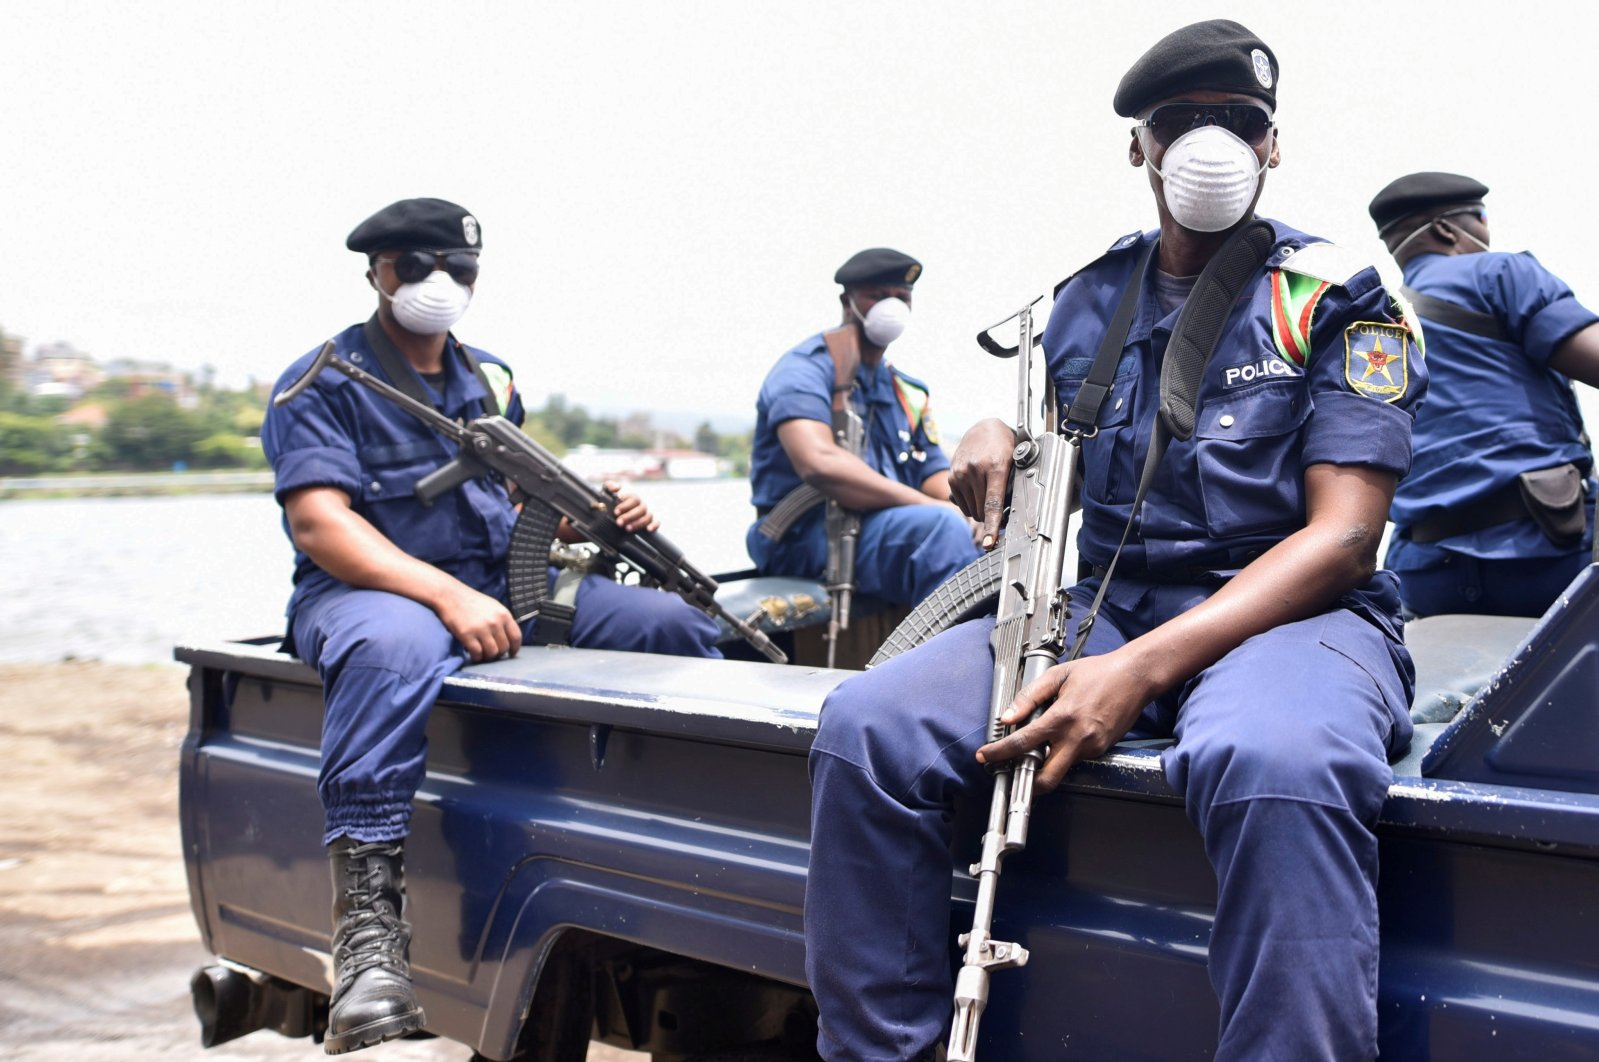 Congolese policemen wear masks as they ride on their patrol pick-up truck amid the coronavirus outbreak in Goma, eastern Democratic Republic of Congo, March 19, 2020. (Reuters Photo)